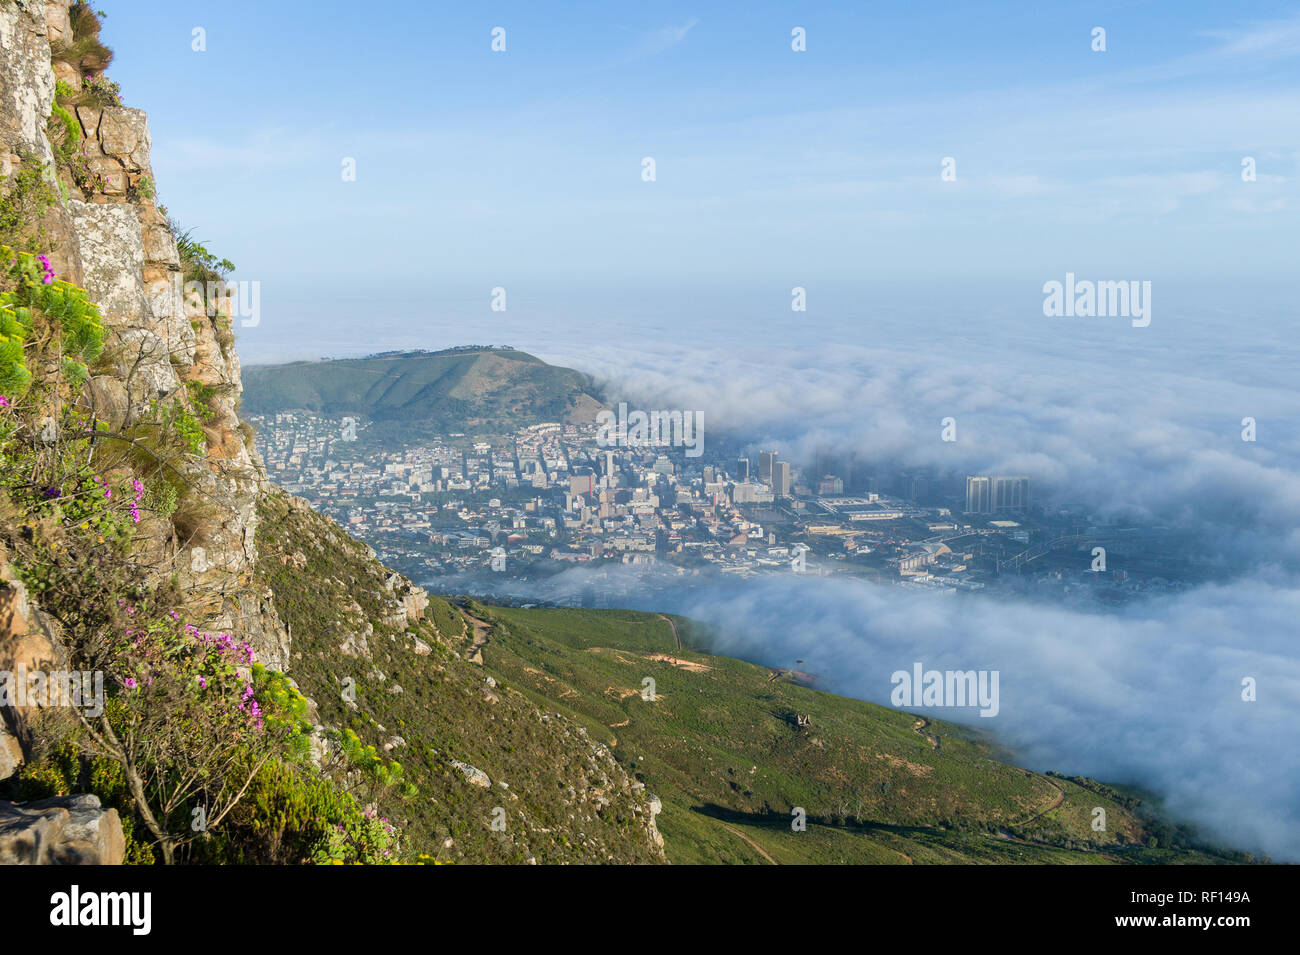 Devil's Peak is a popular hiking destination for residents and tourists in  Table Mountain National Park, Cape Town, Western Cape, South Africa - Stock Image